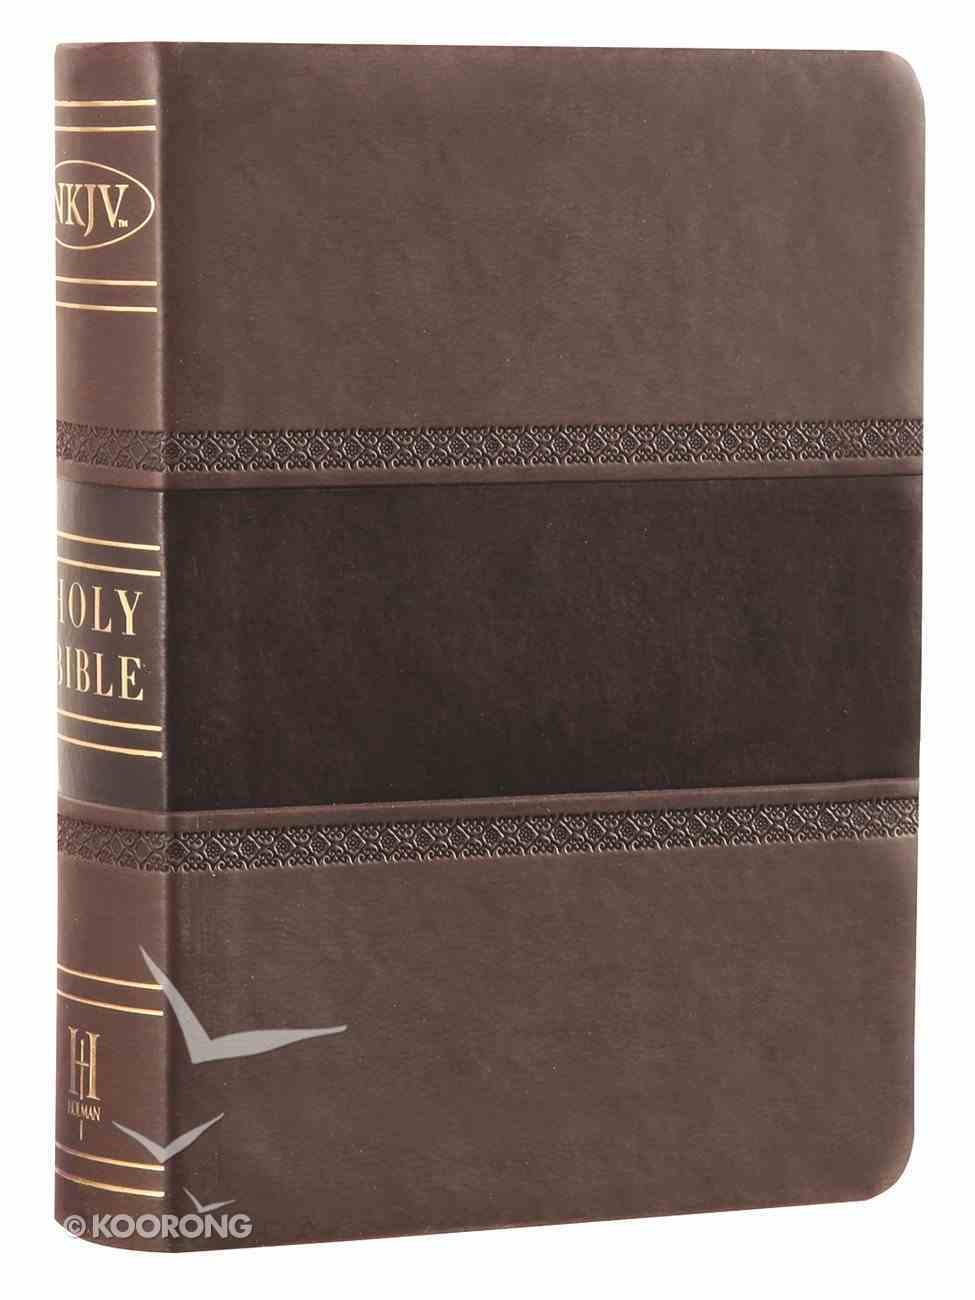 NKJV Large Print Compact Reference Bible Brown/Chocolate Leathertouch Premium Imitation Leather